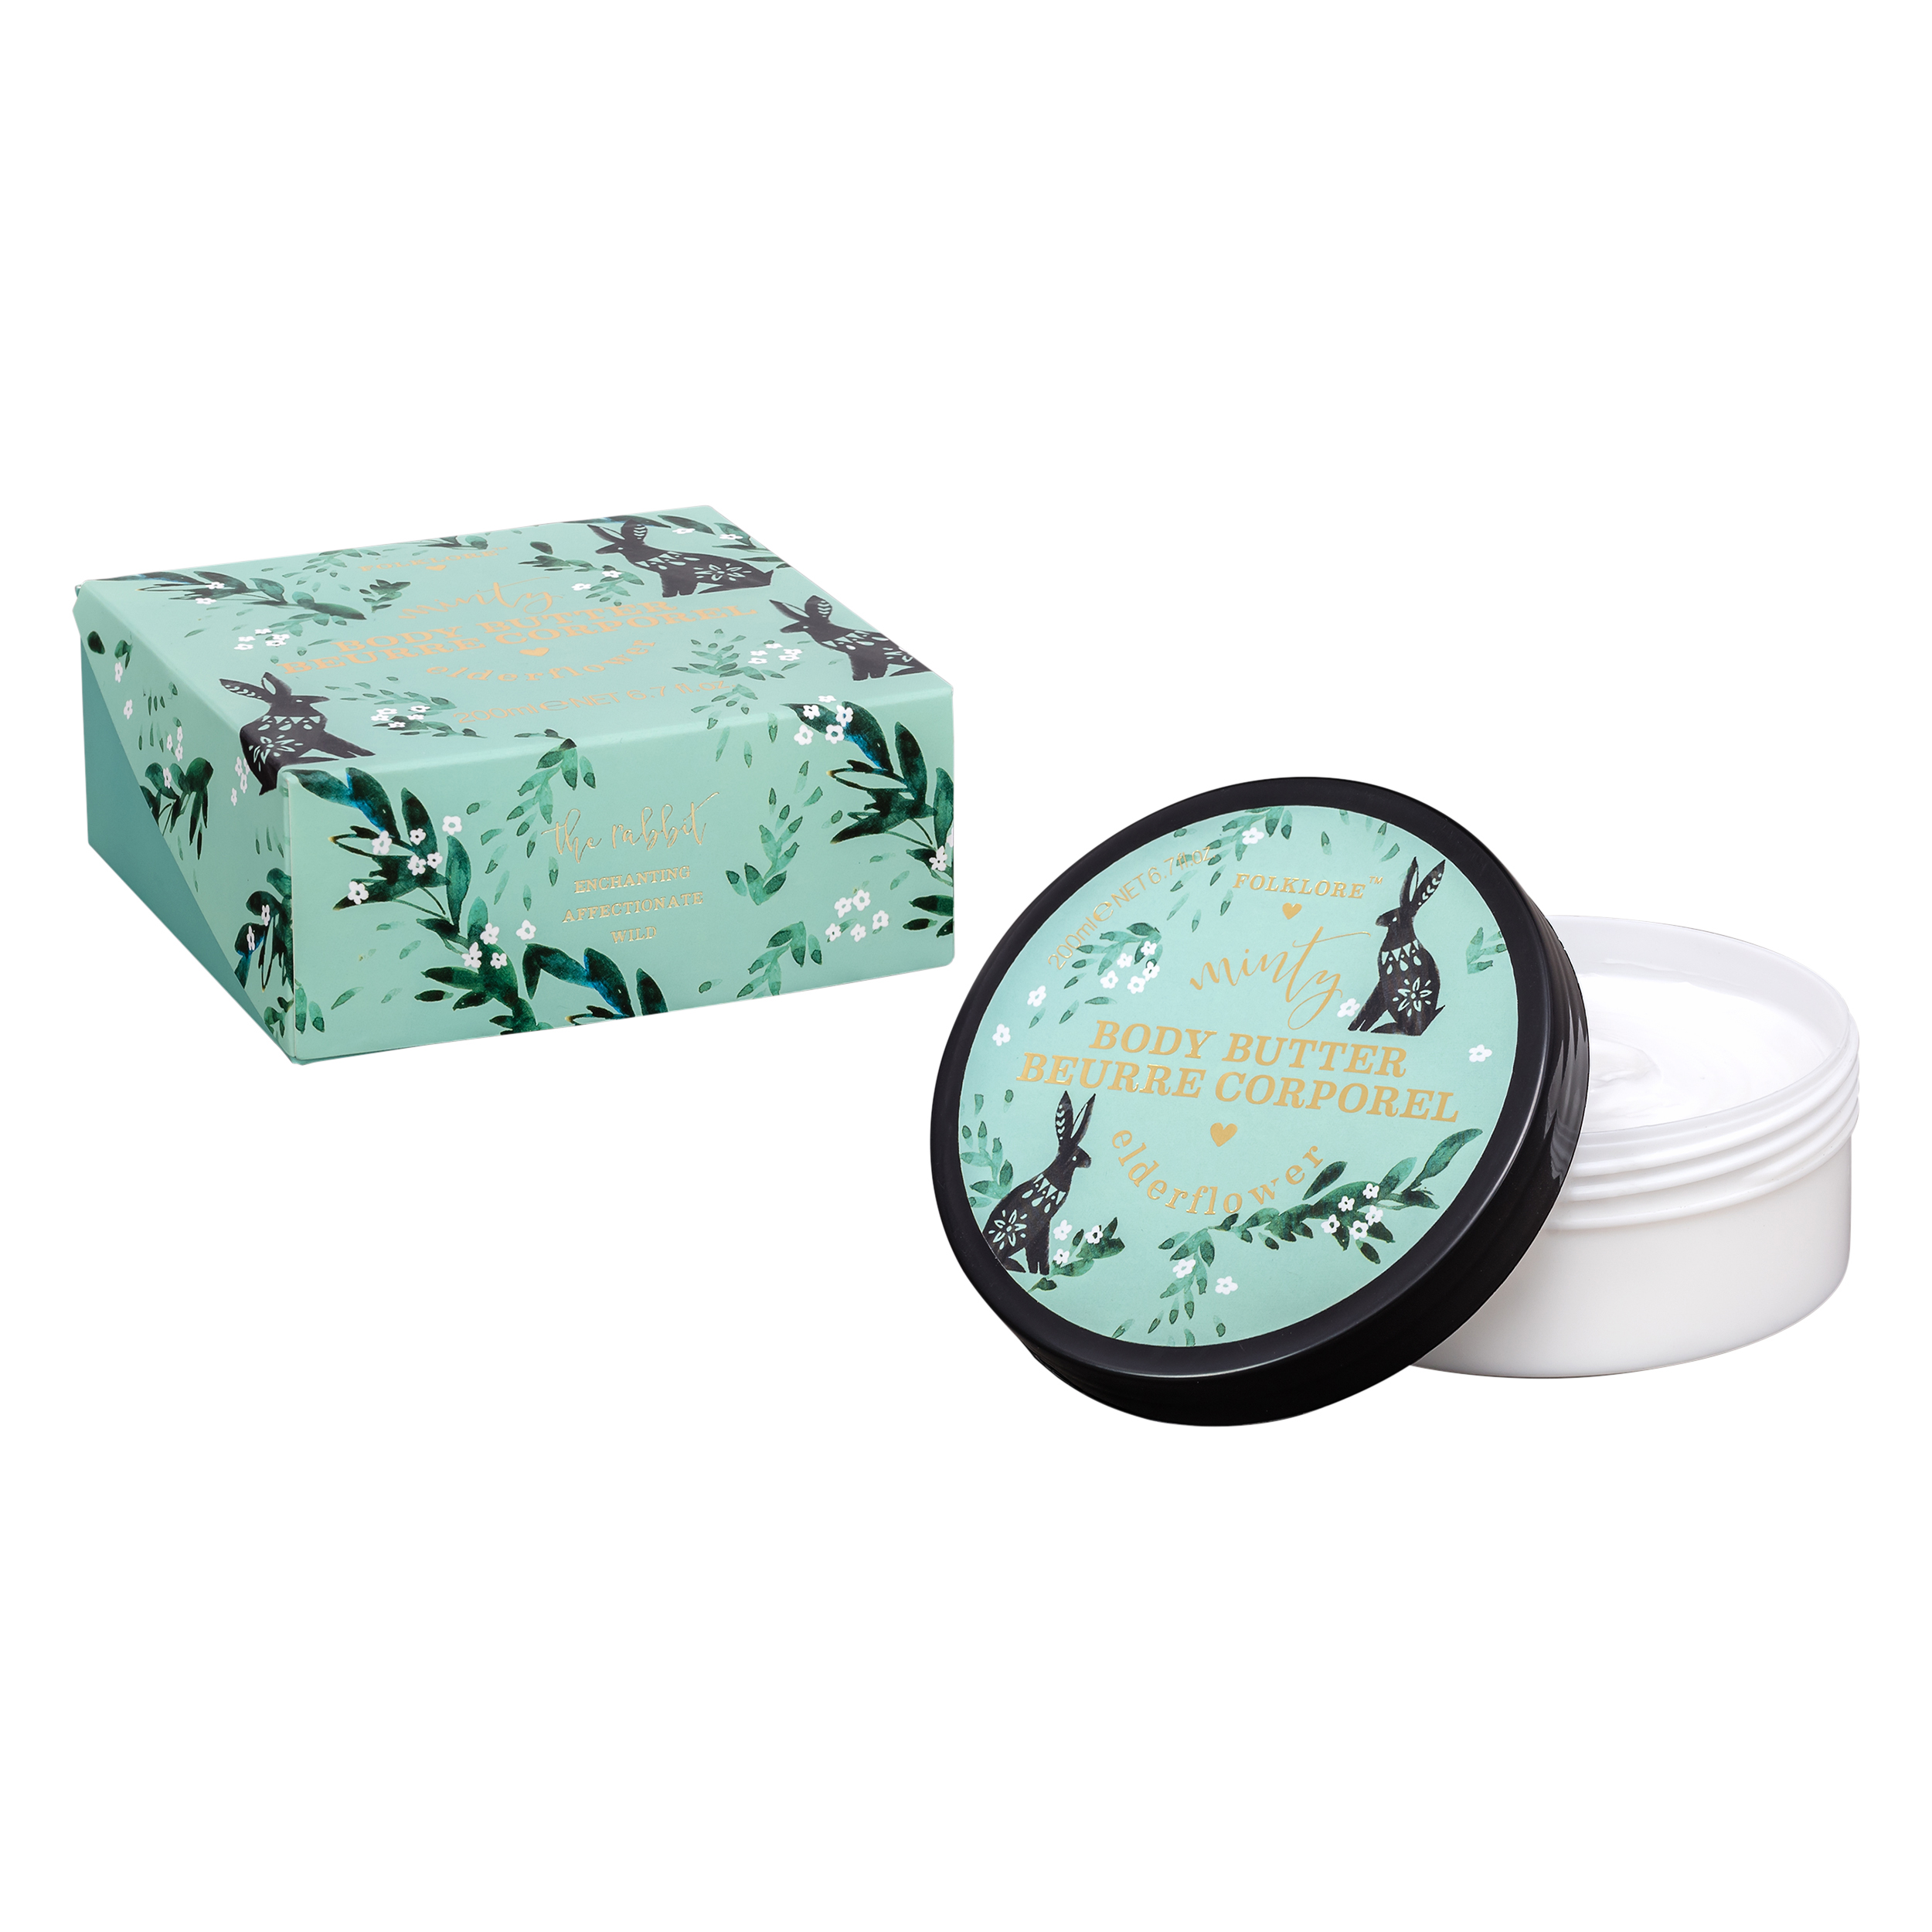 Body Butter, Minty Elderflower